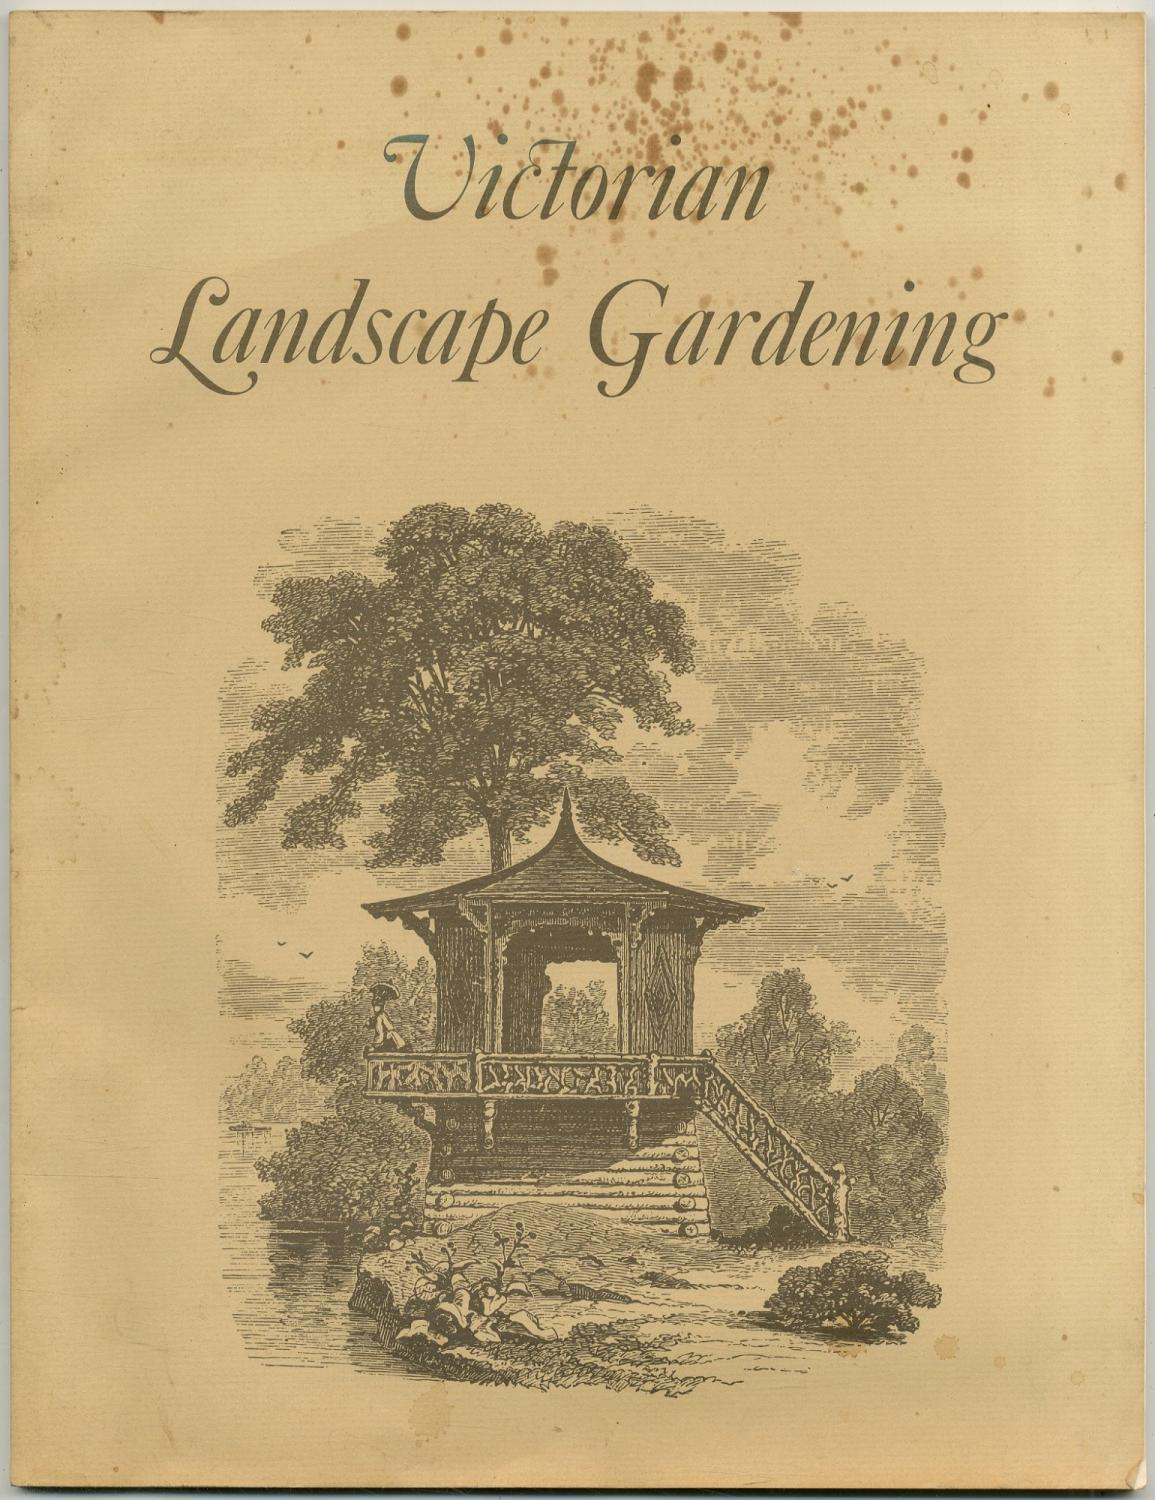 Victorian Landscape Gardening: A Facsimile of Jacob: WEIDENMANN, Jacob with